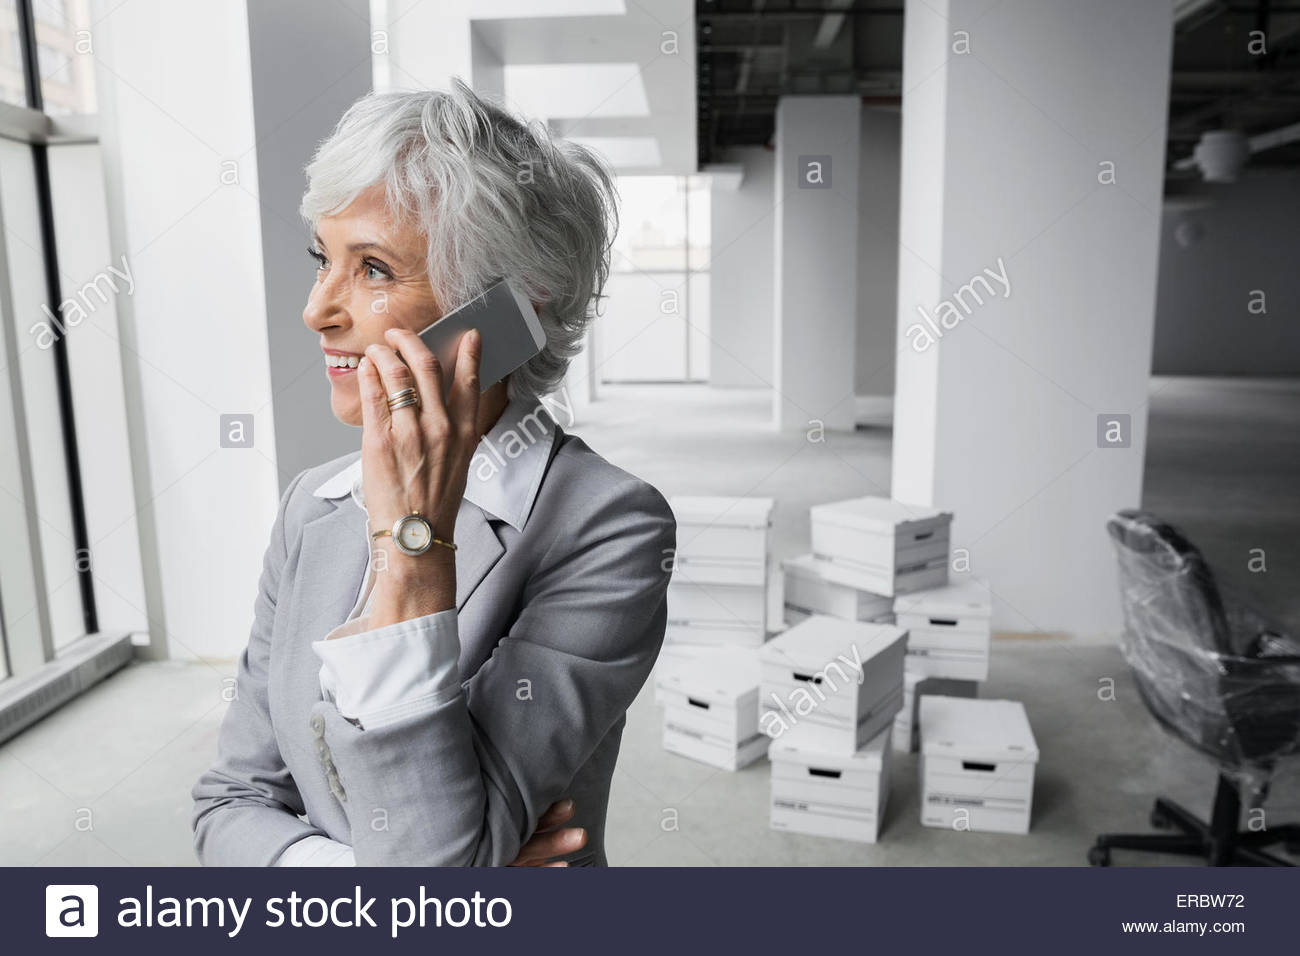 Businesswoman talking on cell phone in new office - Stock Image